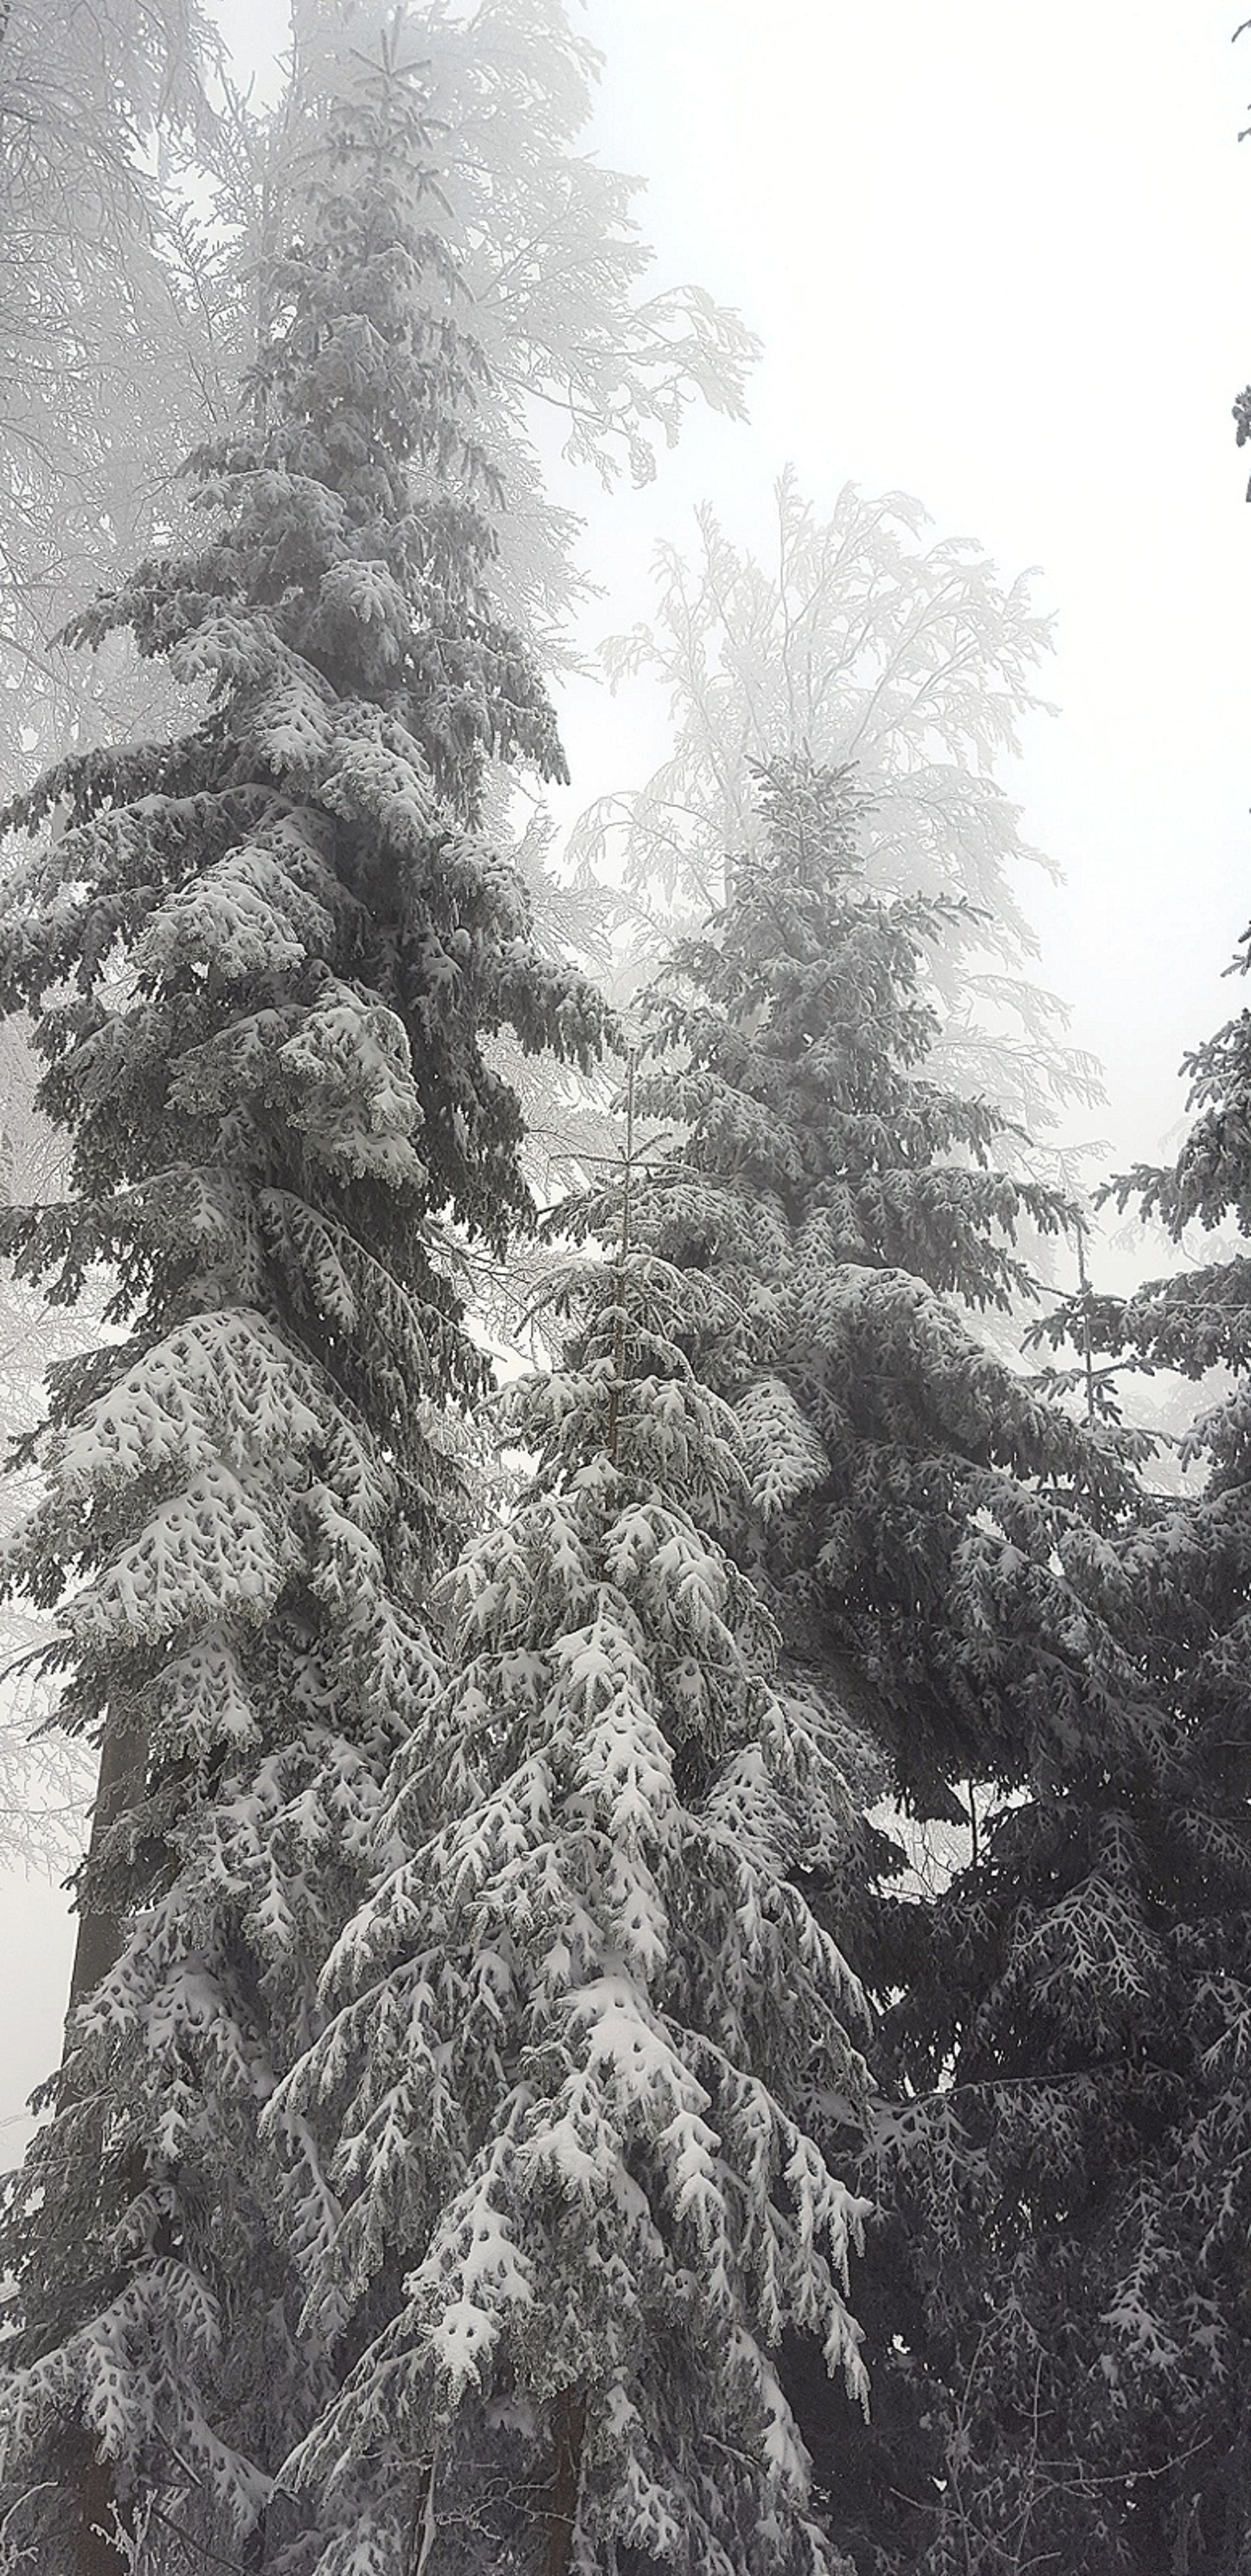 Snowy pines | edita.papic, cold, evergreen, frost